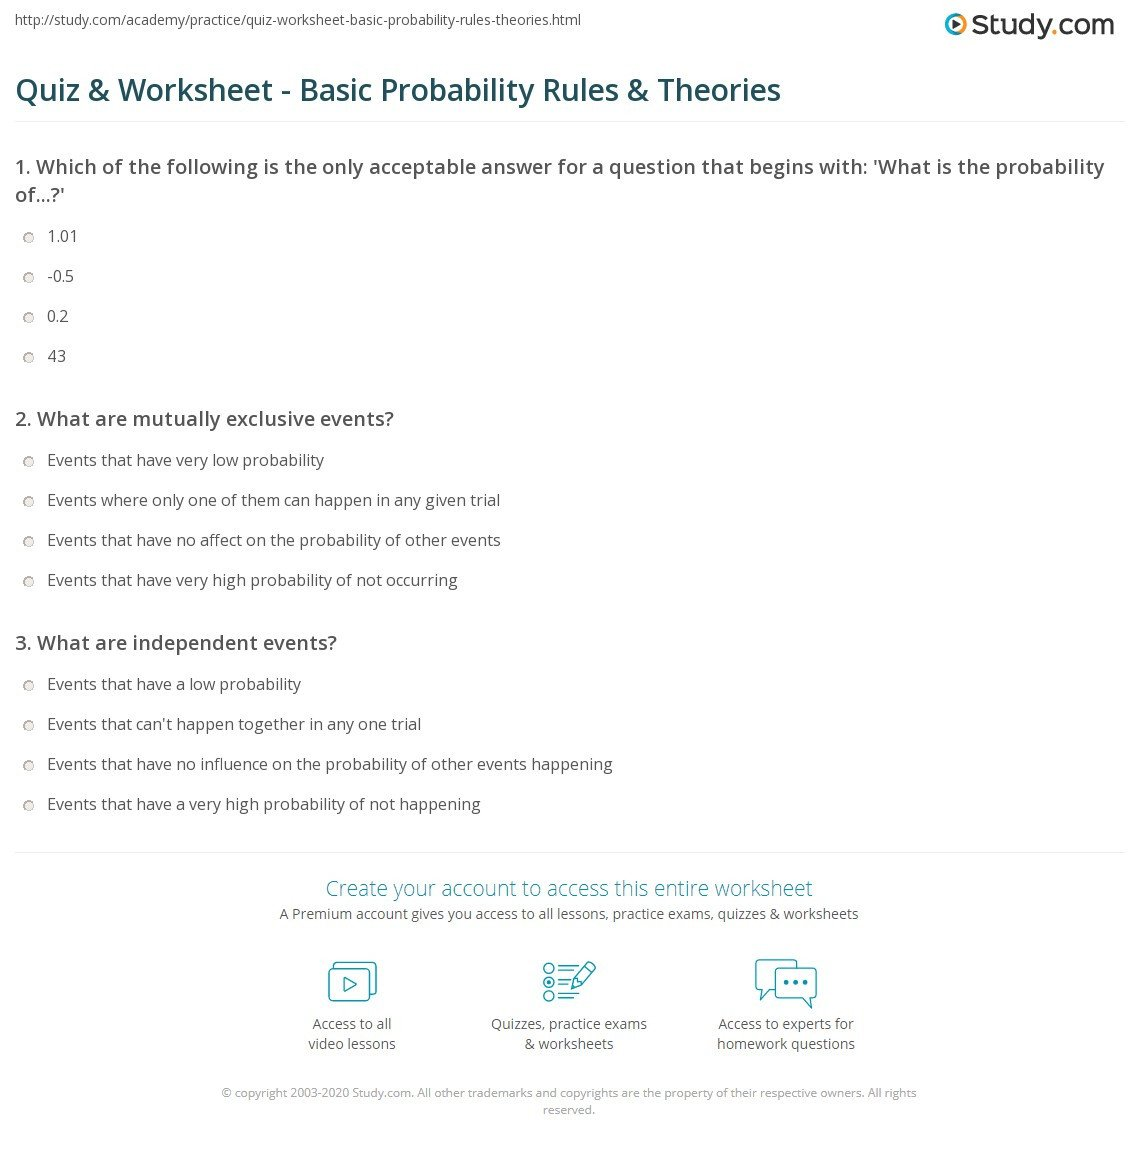 quiz worksheet basic probability rules theories study